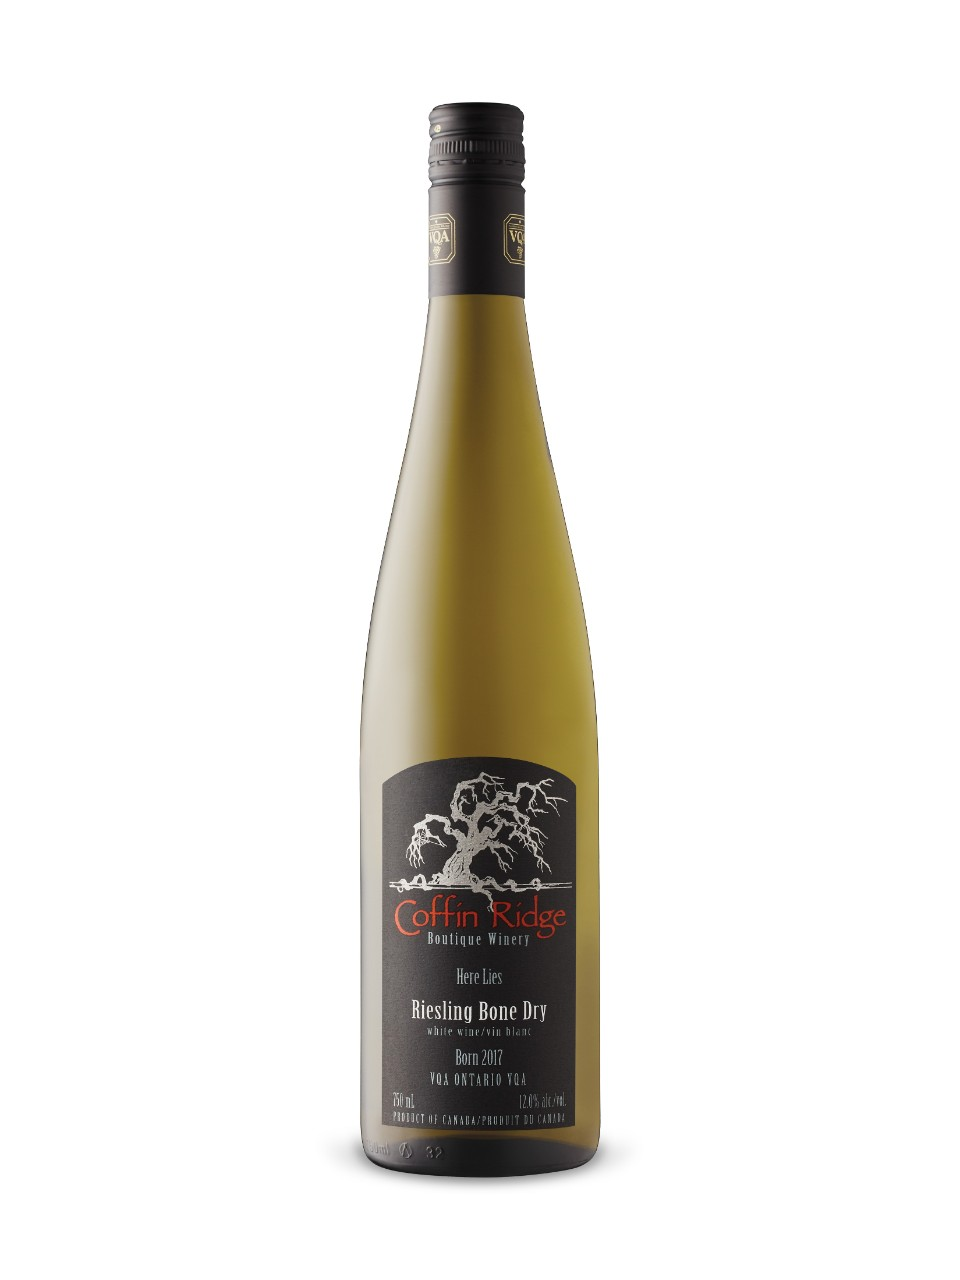 Riesling Bone Dry Coffin Ridge 2017